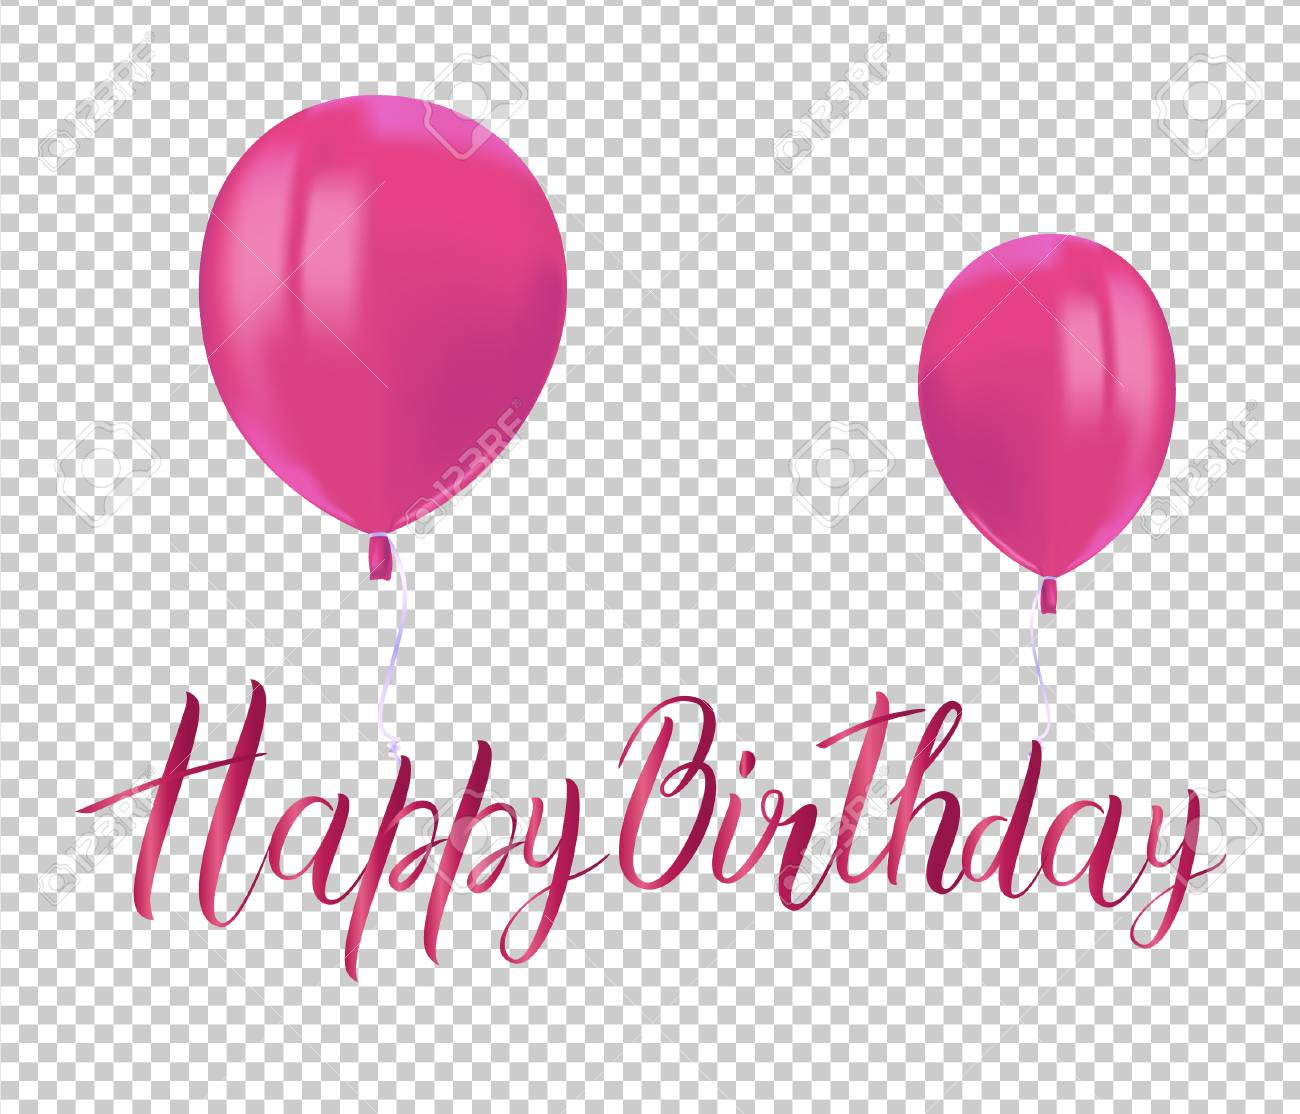 Realistic Pink Balloons With Reflects And Inscription HAPPY BIRTHDAY On Transparent Background Festive Decor Element